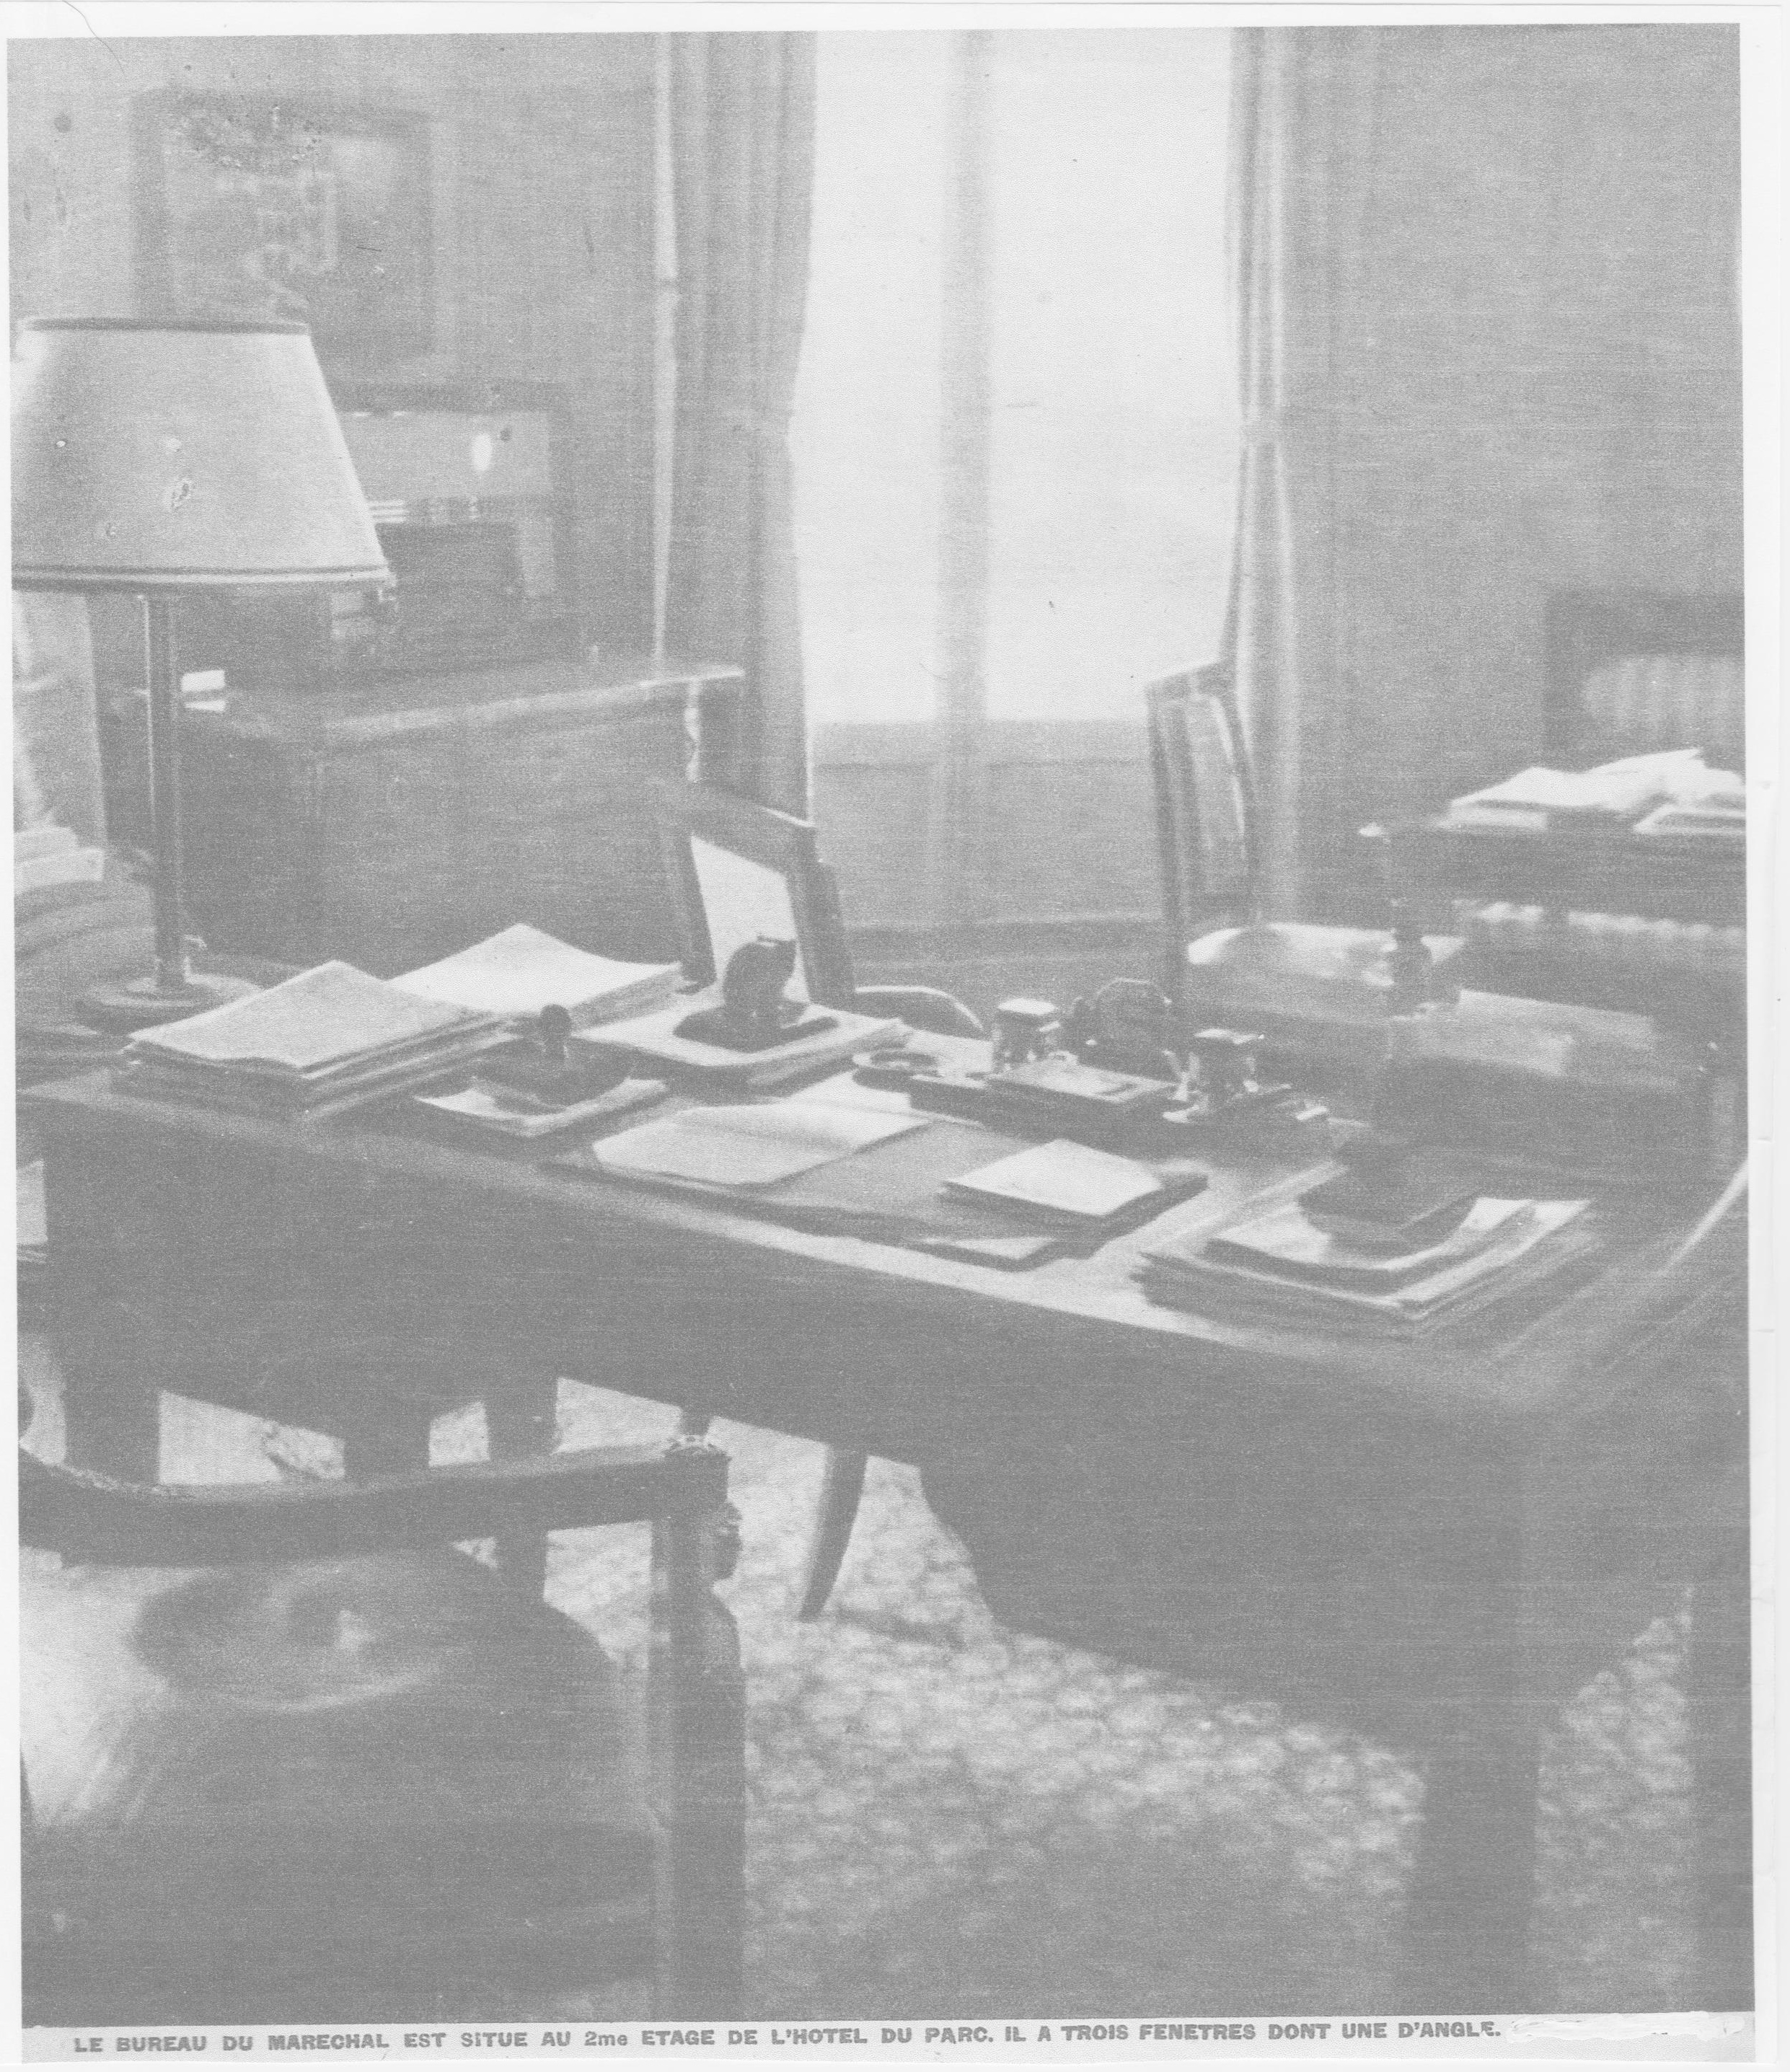 h tel du parc vichy r sidence du chef de l etat fran ais 10 juillet 1940 20 ao t 1944. Black Bedroom Furniture Sets. Home Design Ideas